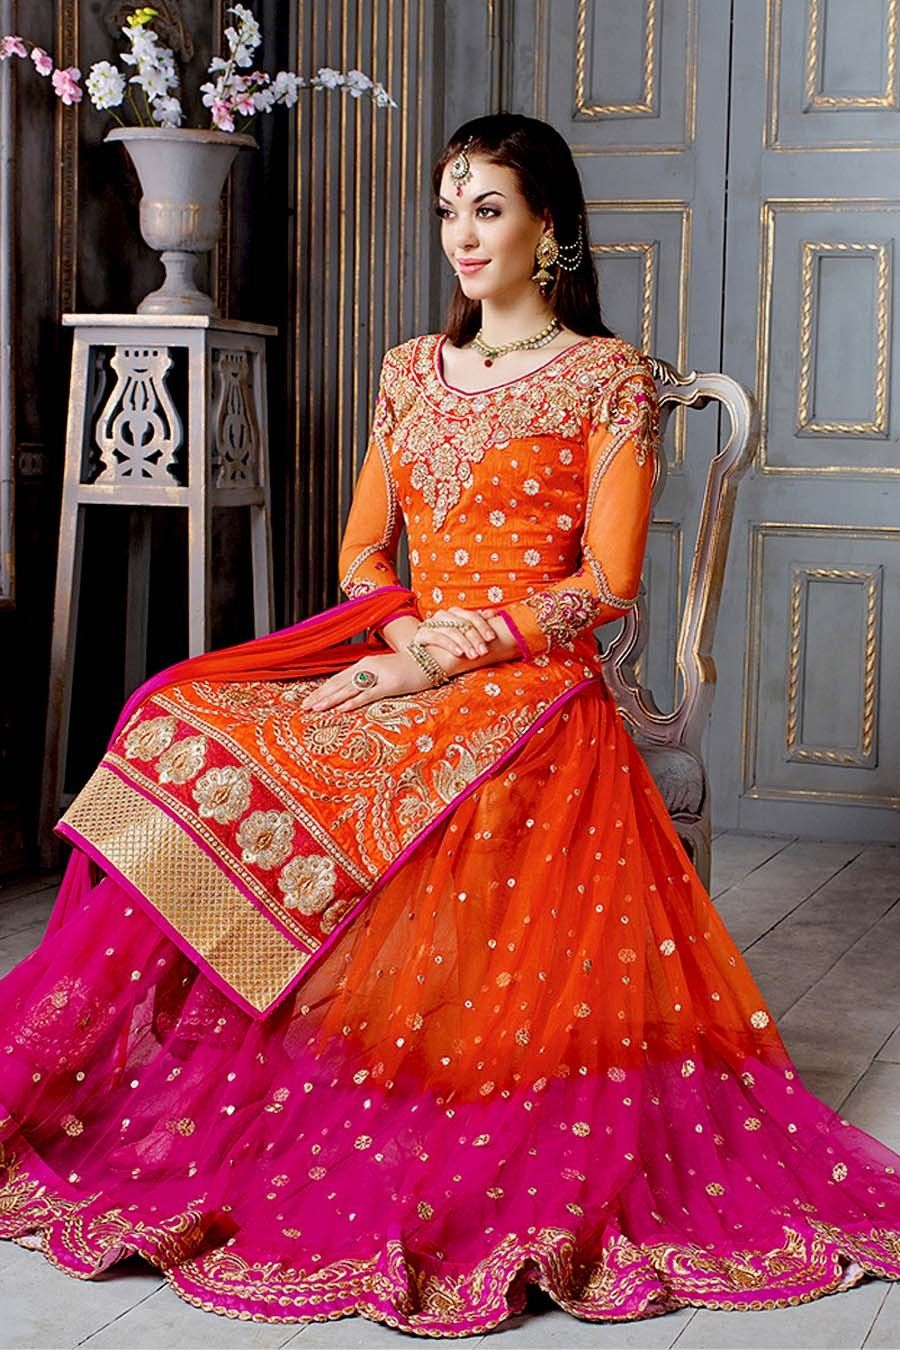 a75d6fc153 Lehenga With Long Kameez | Bollywood Glam in 2019 | Lehenga, Pink ...